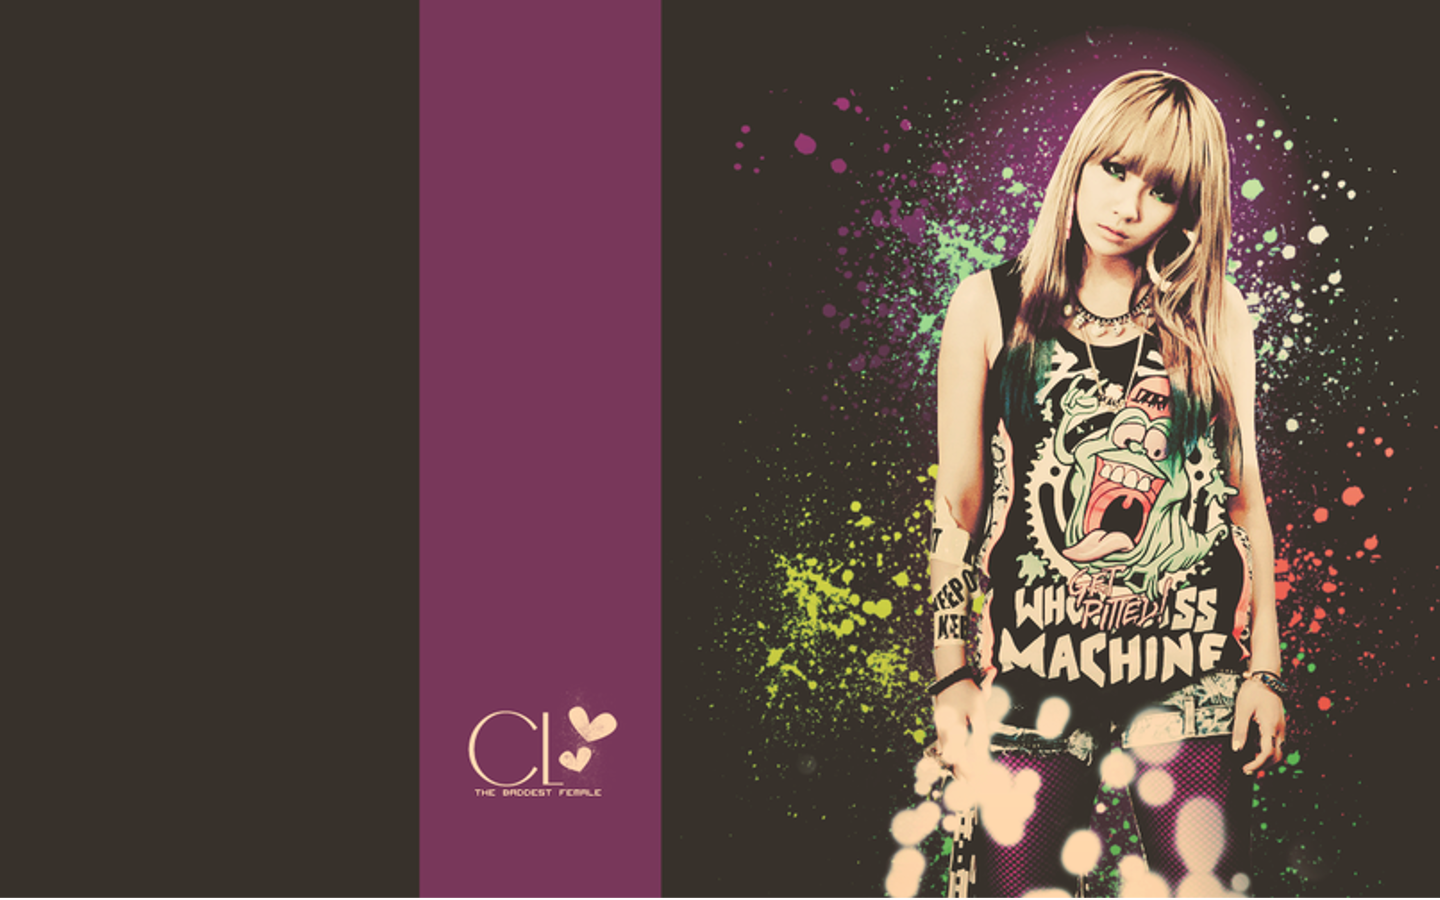 2ne1 Wallpaper Hd 2ne1 Hd Wallpapers Most Beautiful Places In The World